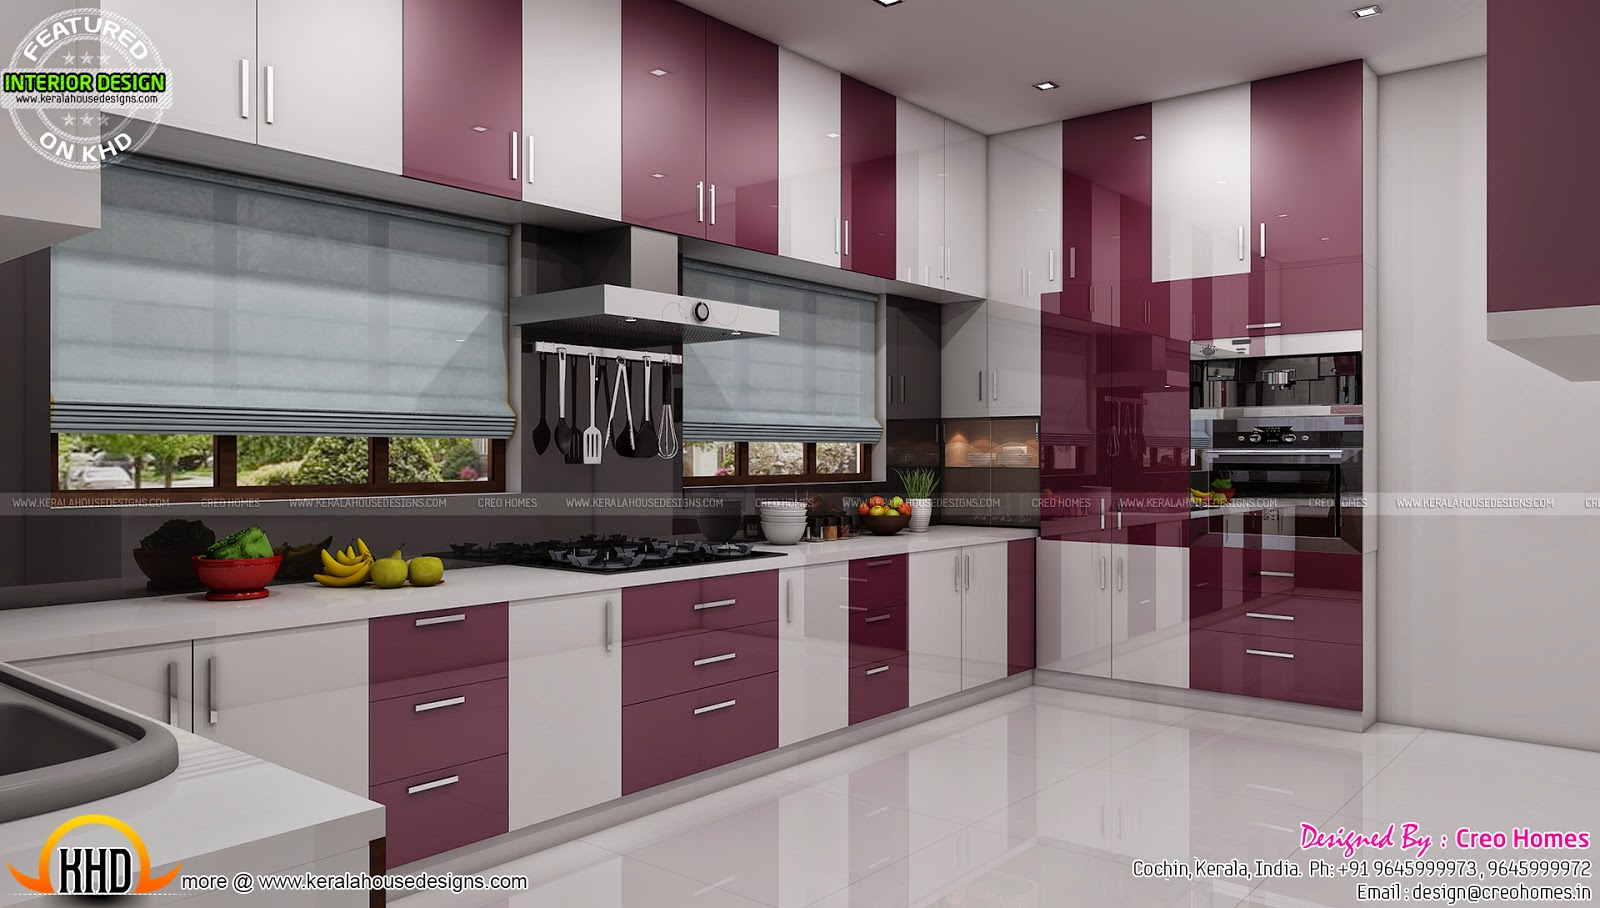 Living prayer kitchen interiors kerala home design and for Kitchen design kerala